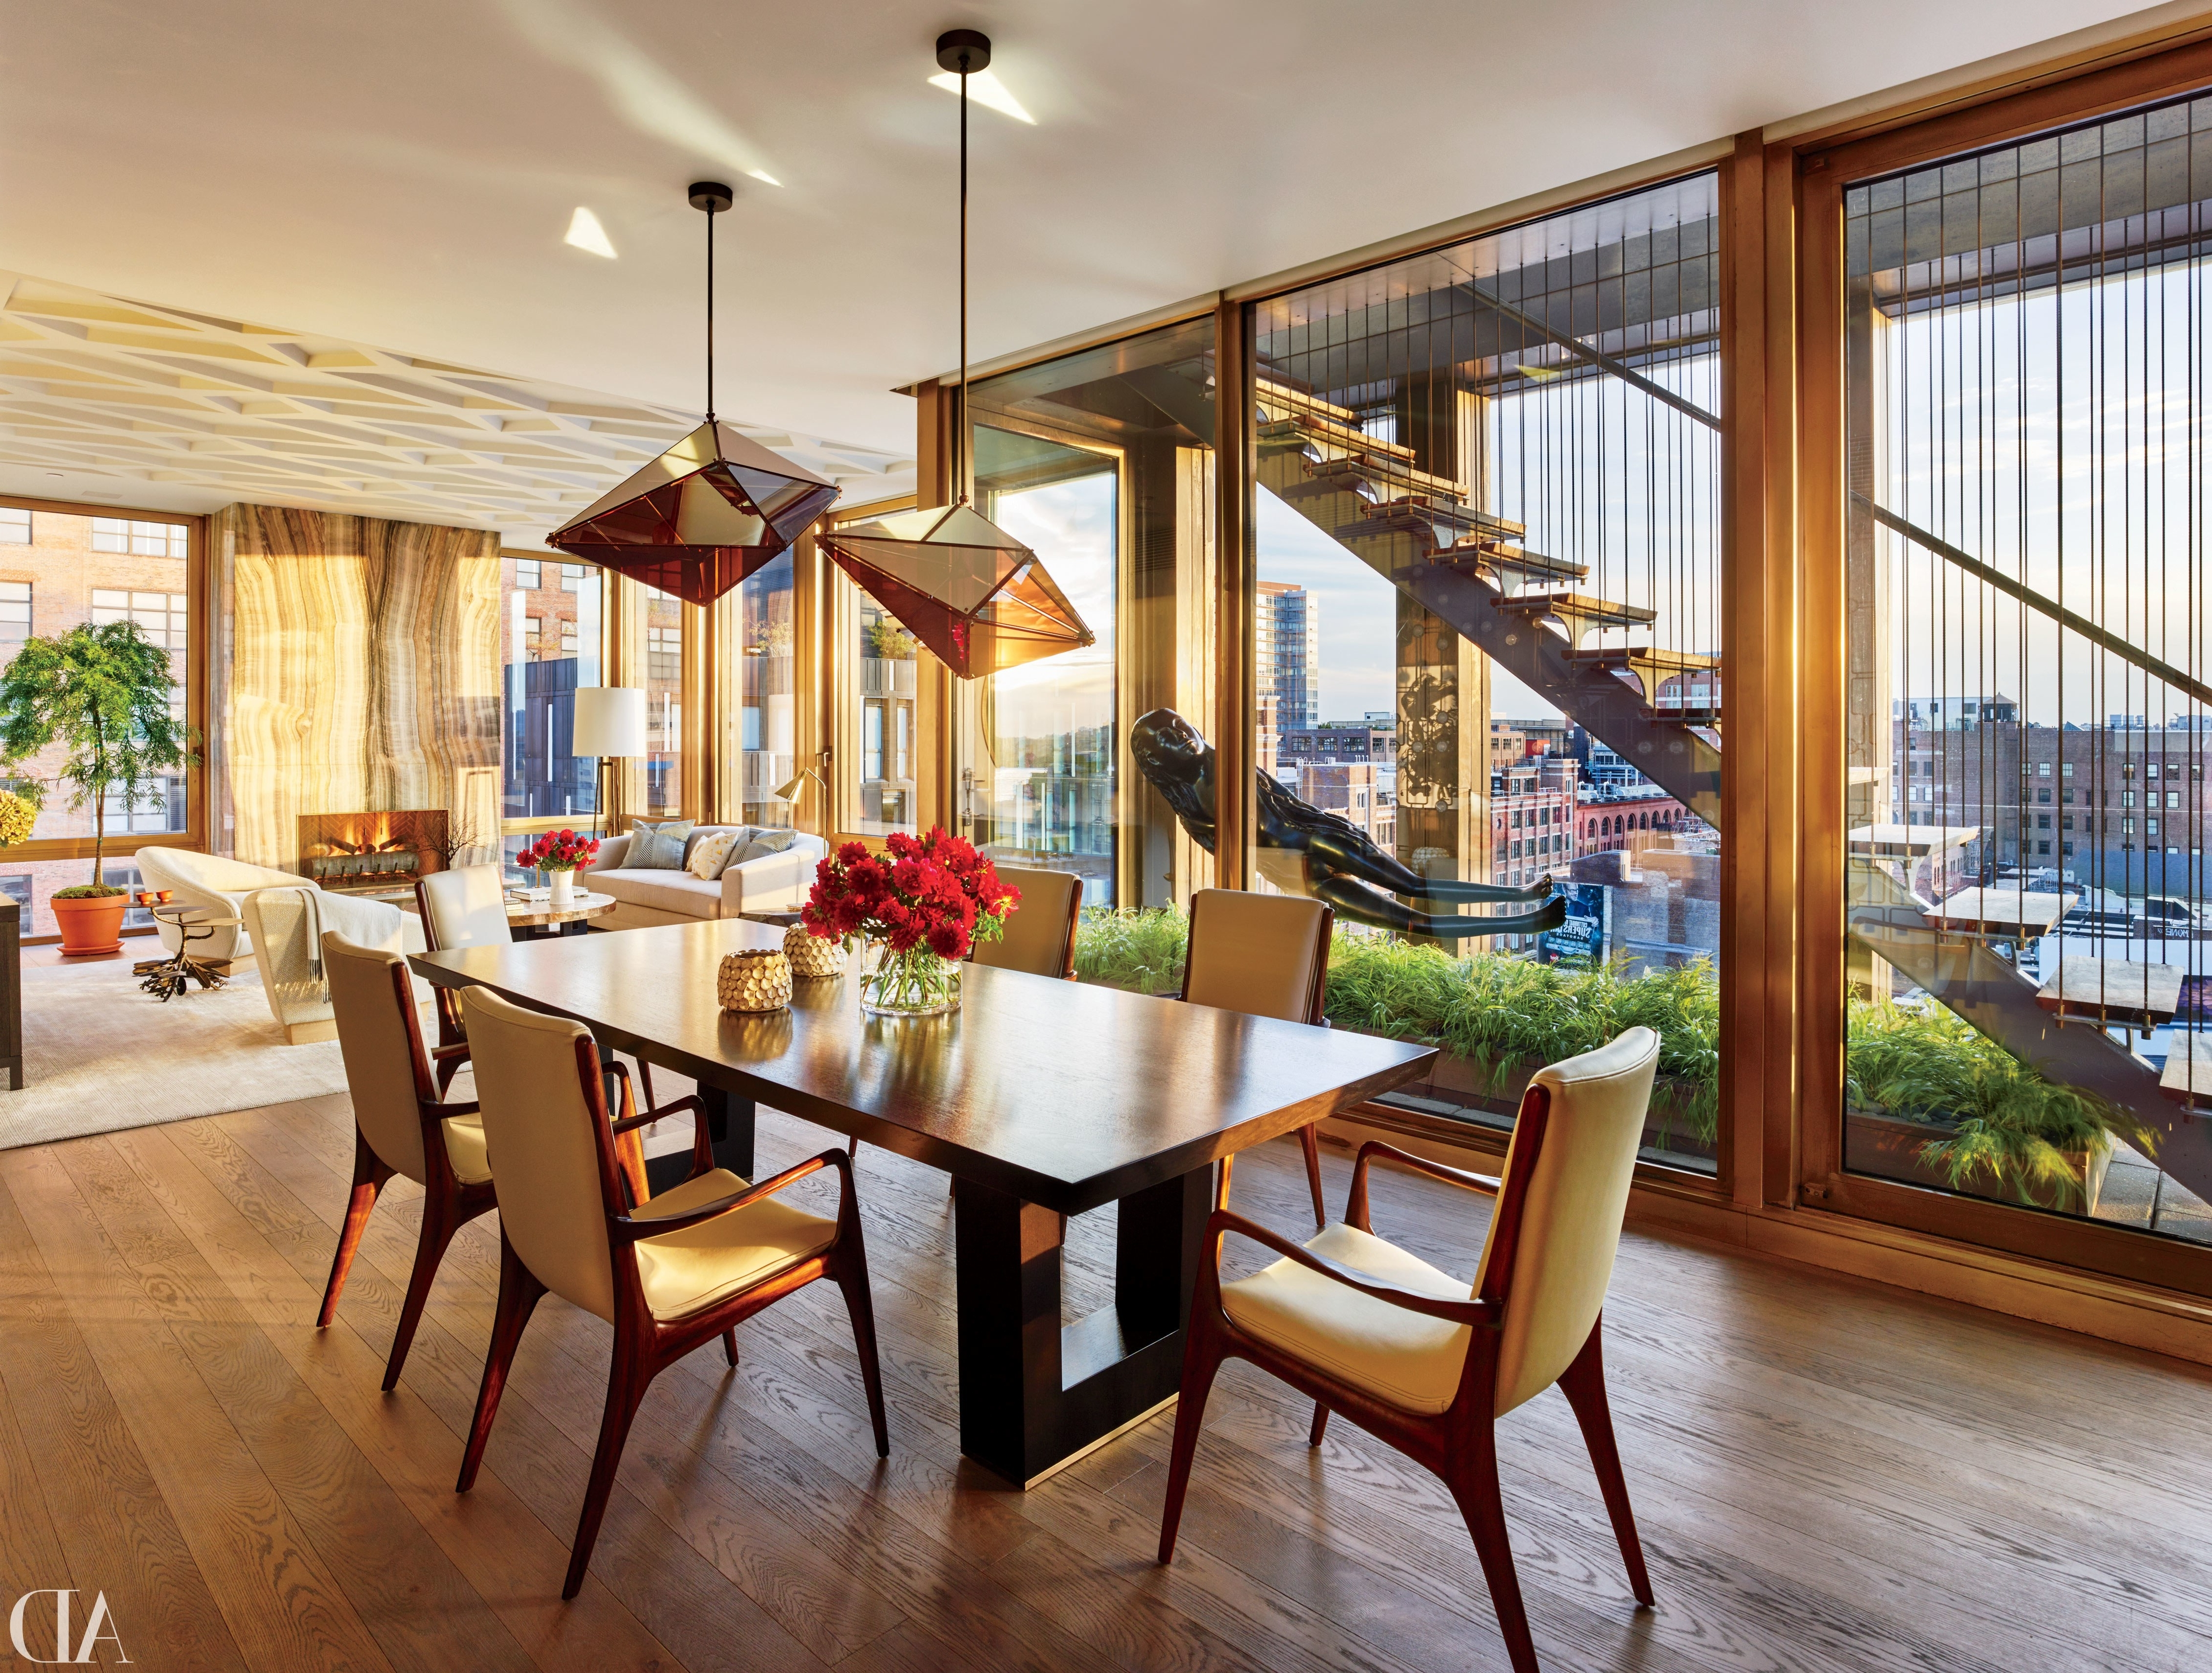 New York Dining Tables In Well Known Dining Room Decor In New York City Photos (View 7 of 25)